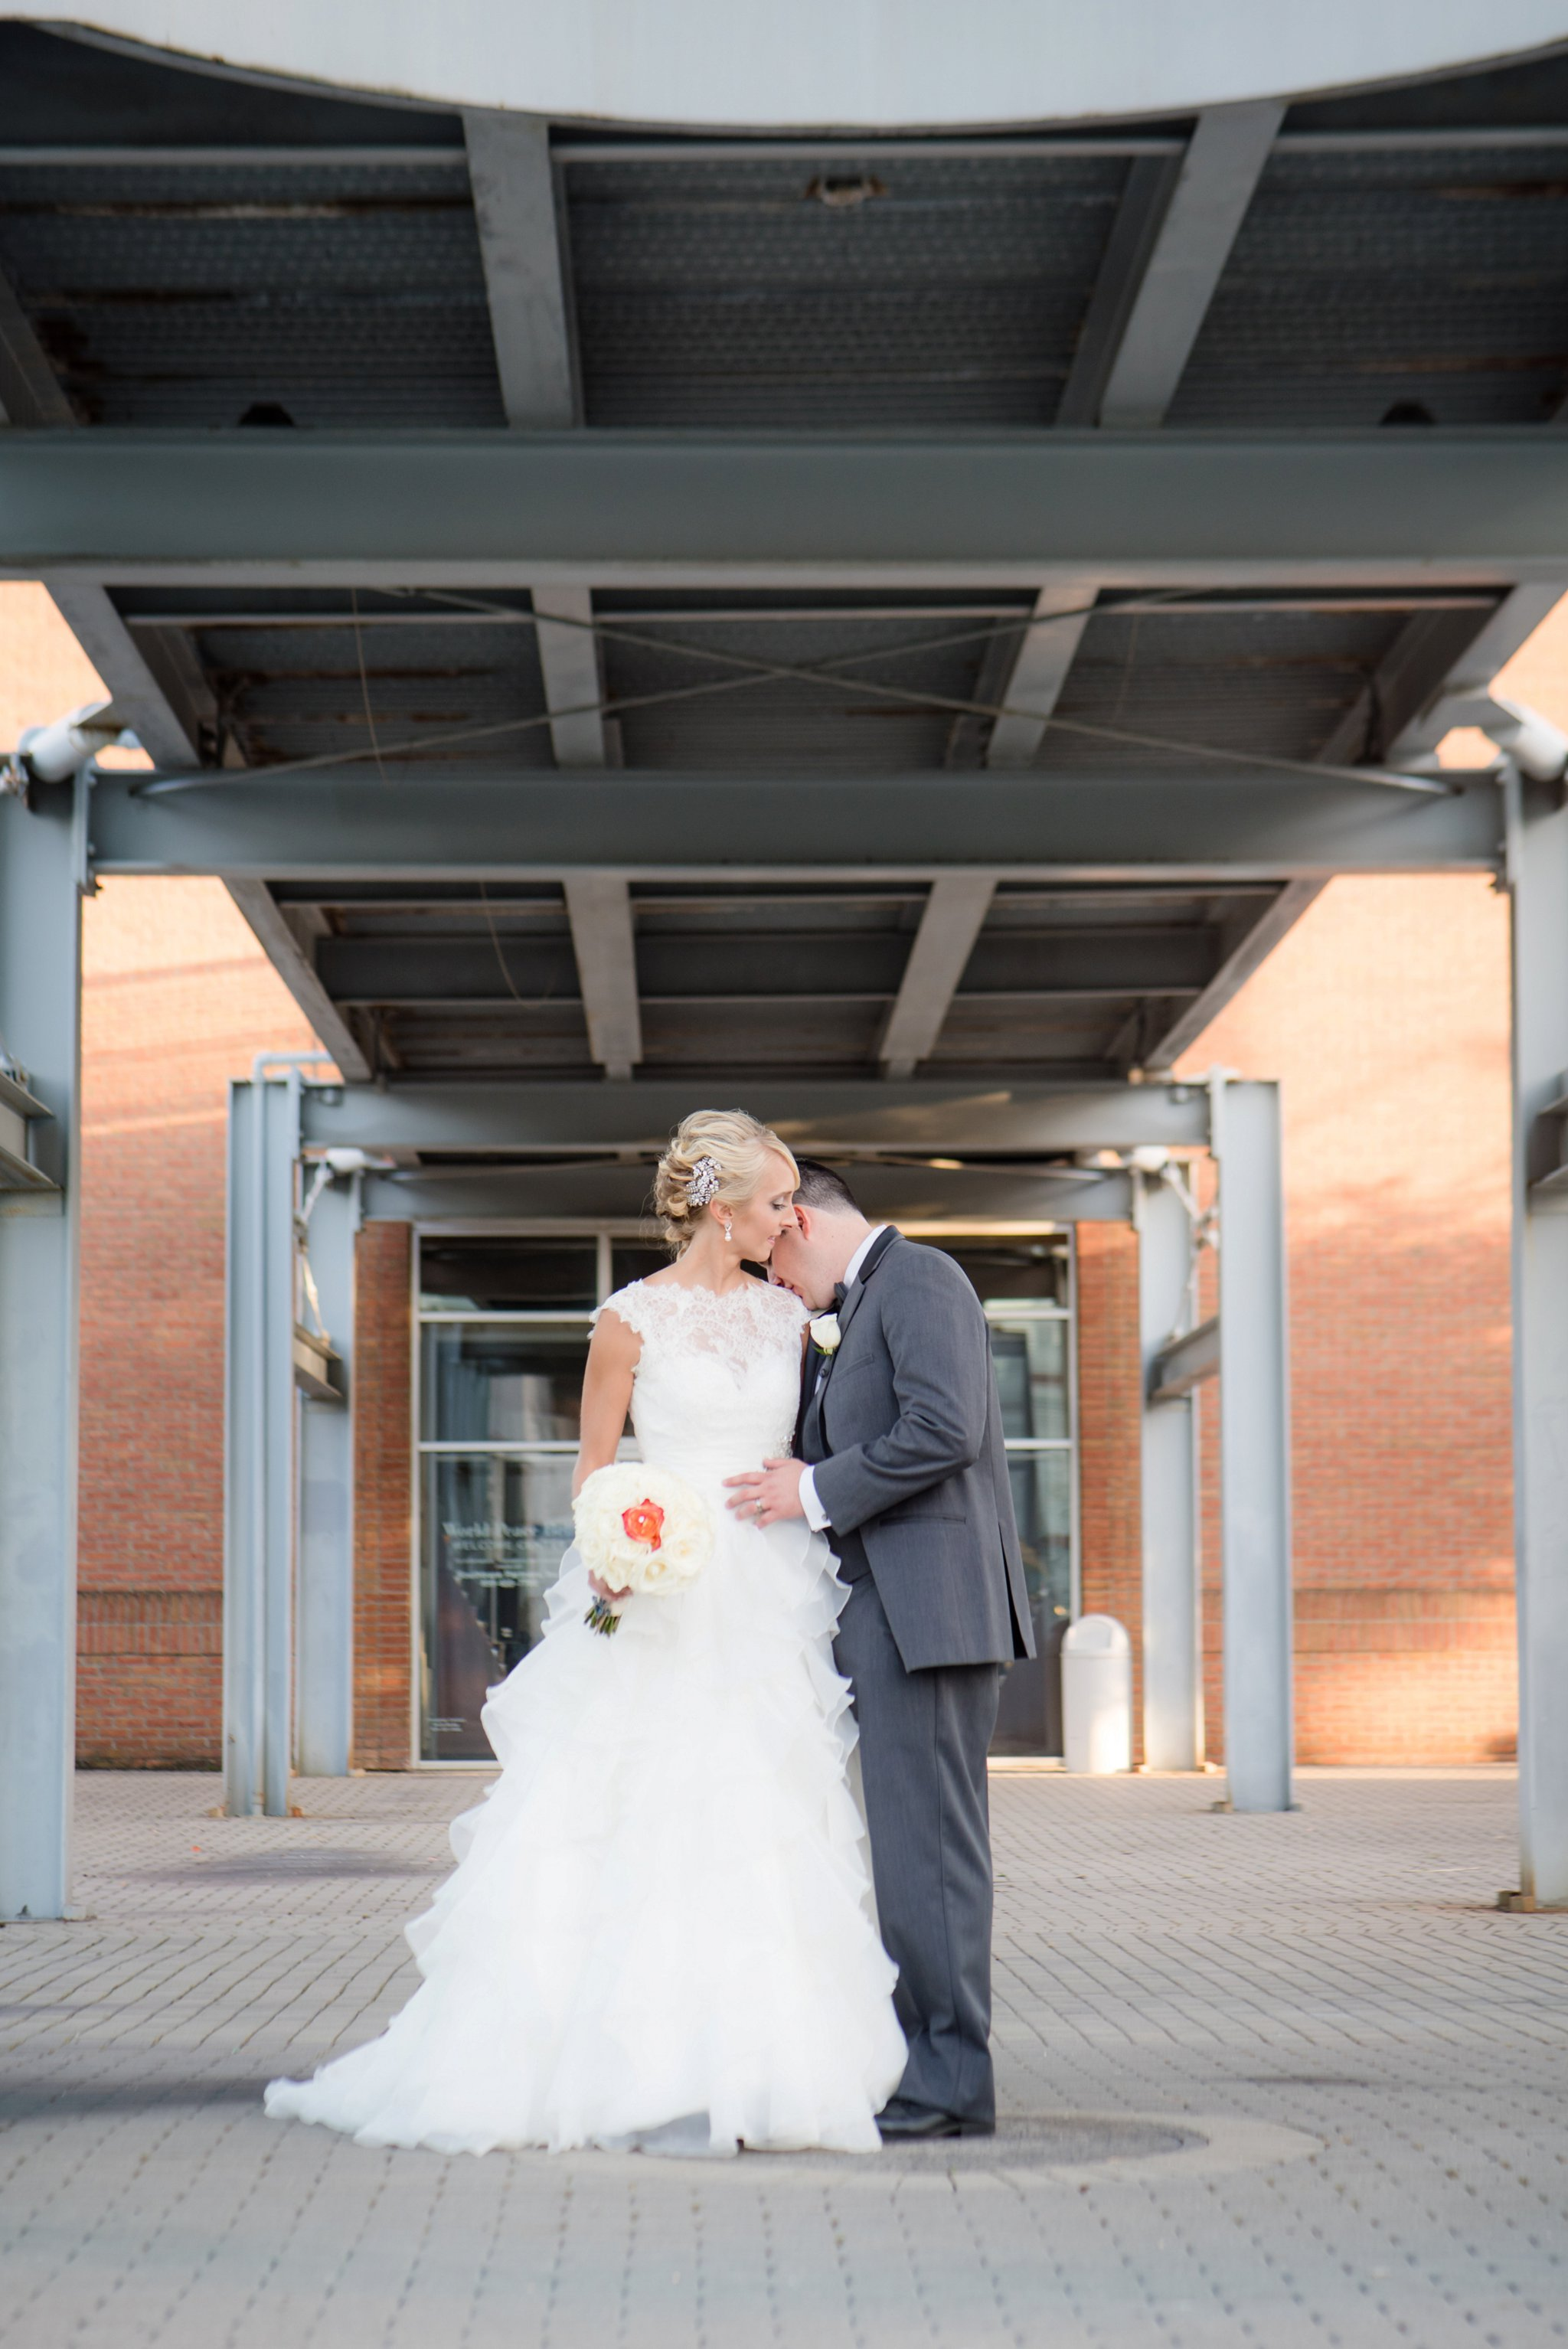 JBP- Cincinnati wedding photographer